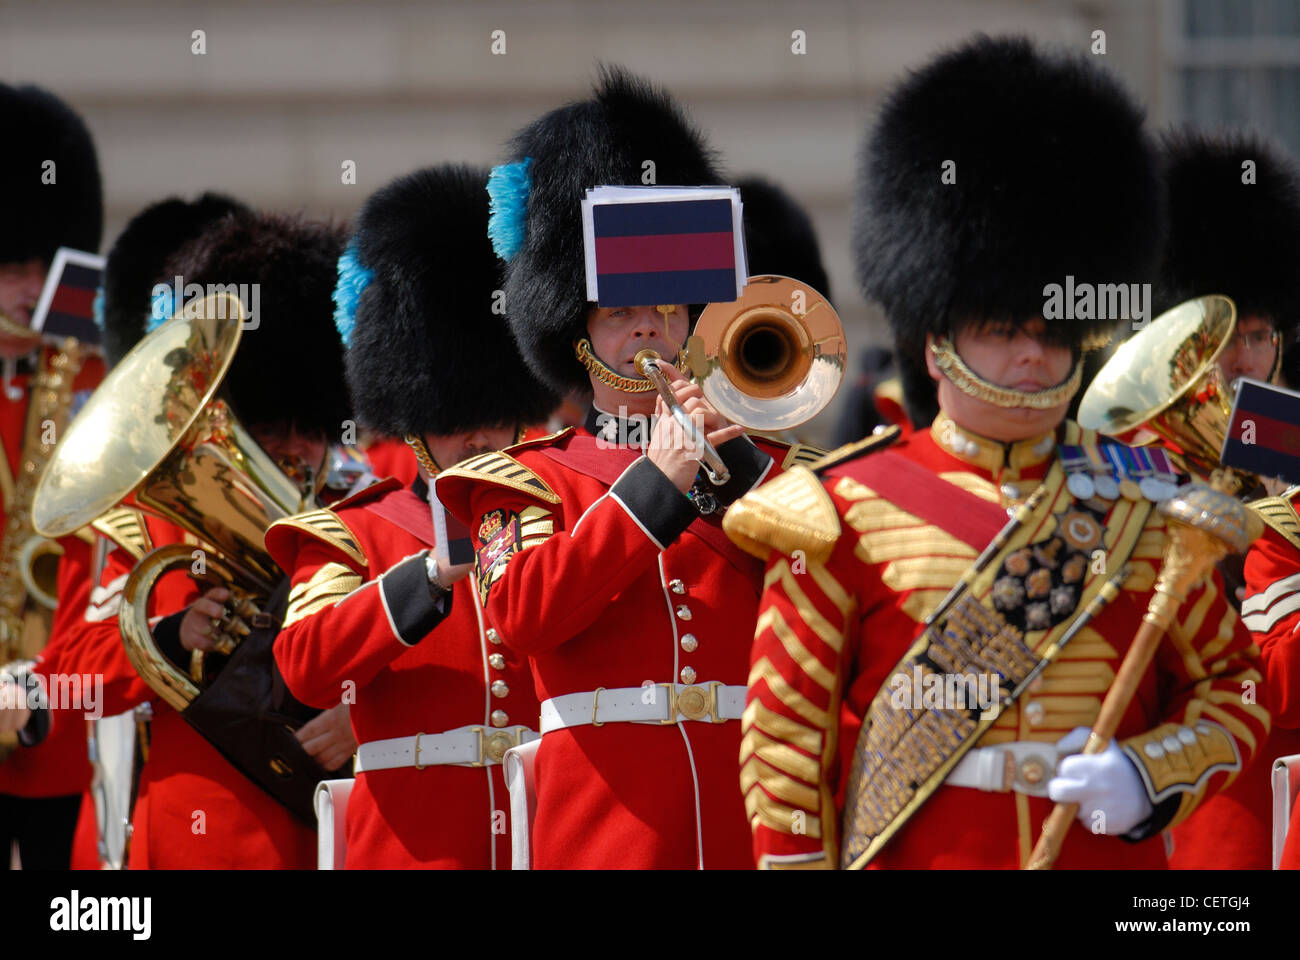 Changing of the Guard ceremony at Buckingham Palace. - Stock Image